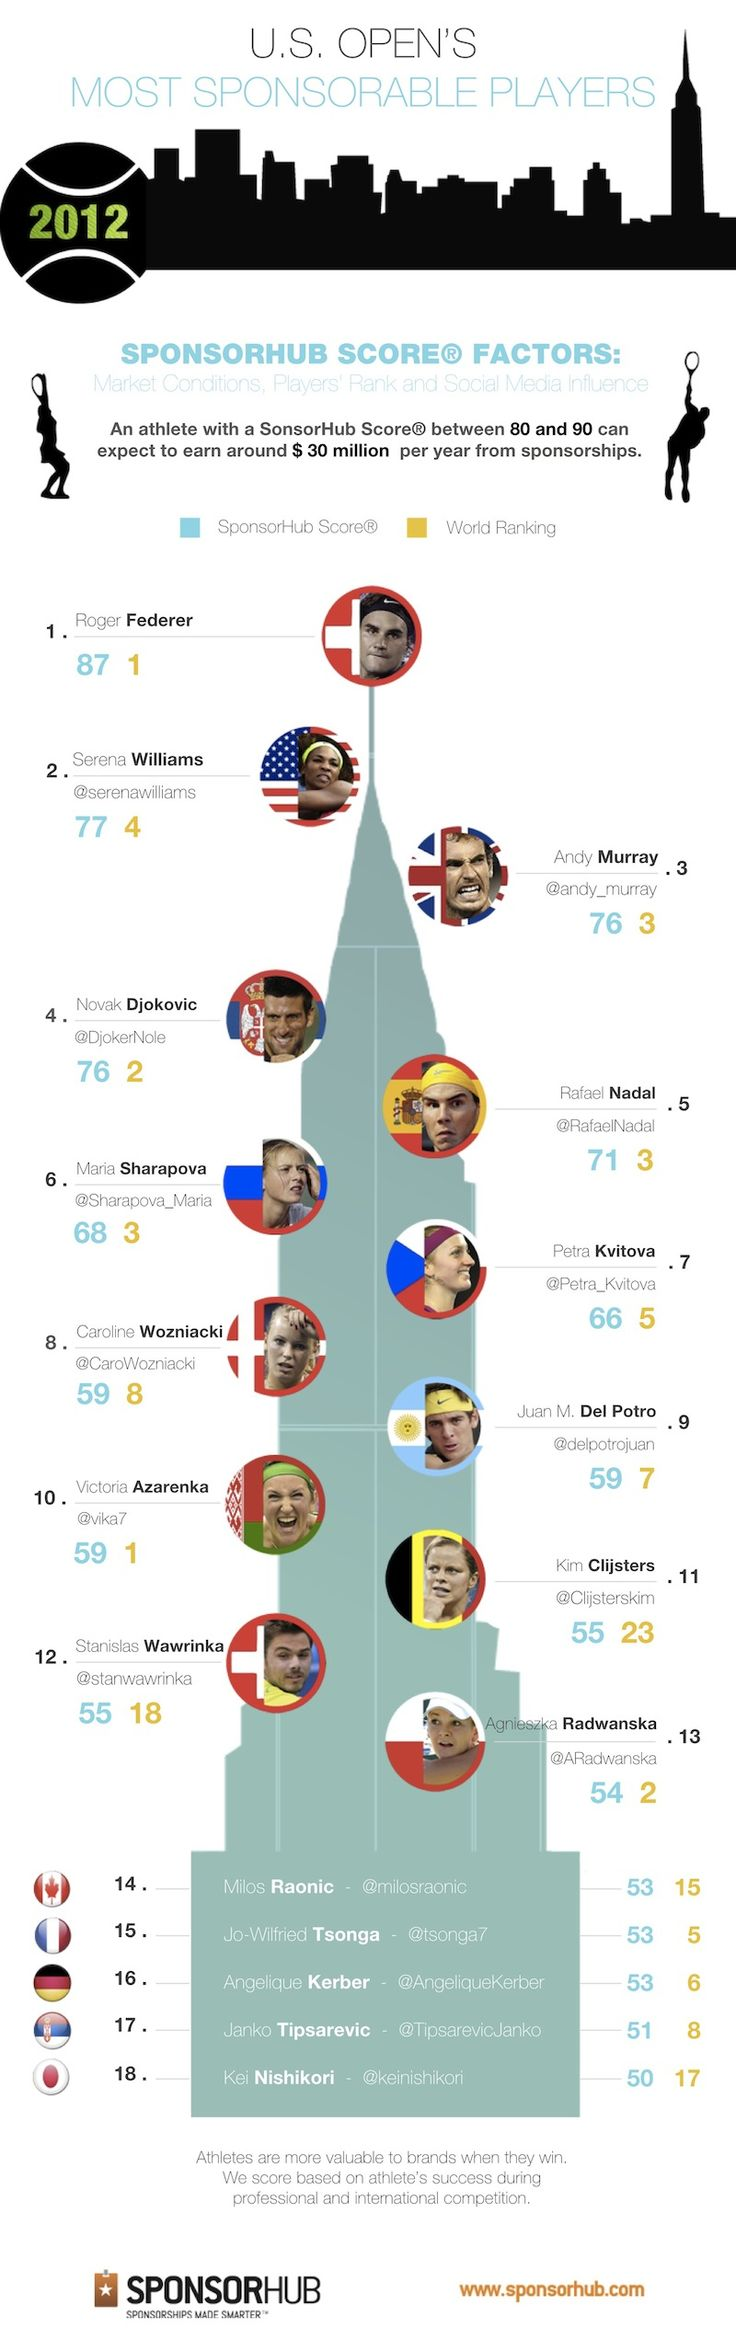 Most Sponsorable Players Of The U.S. Open - Infographic